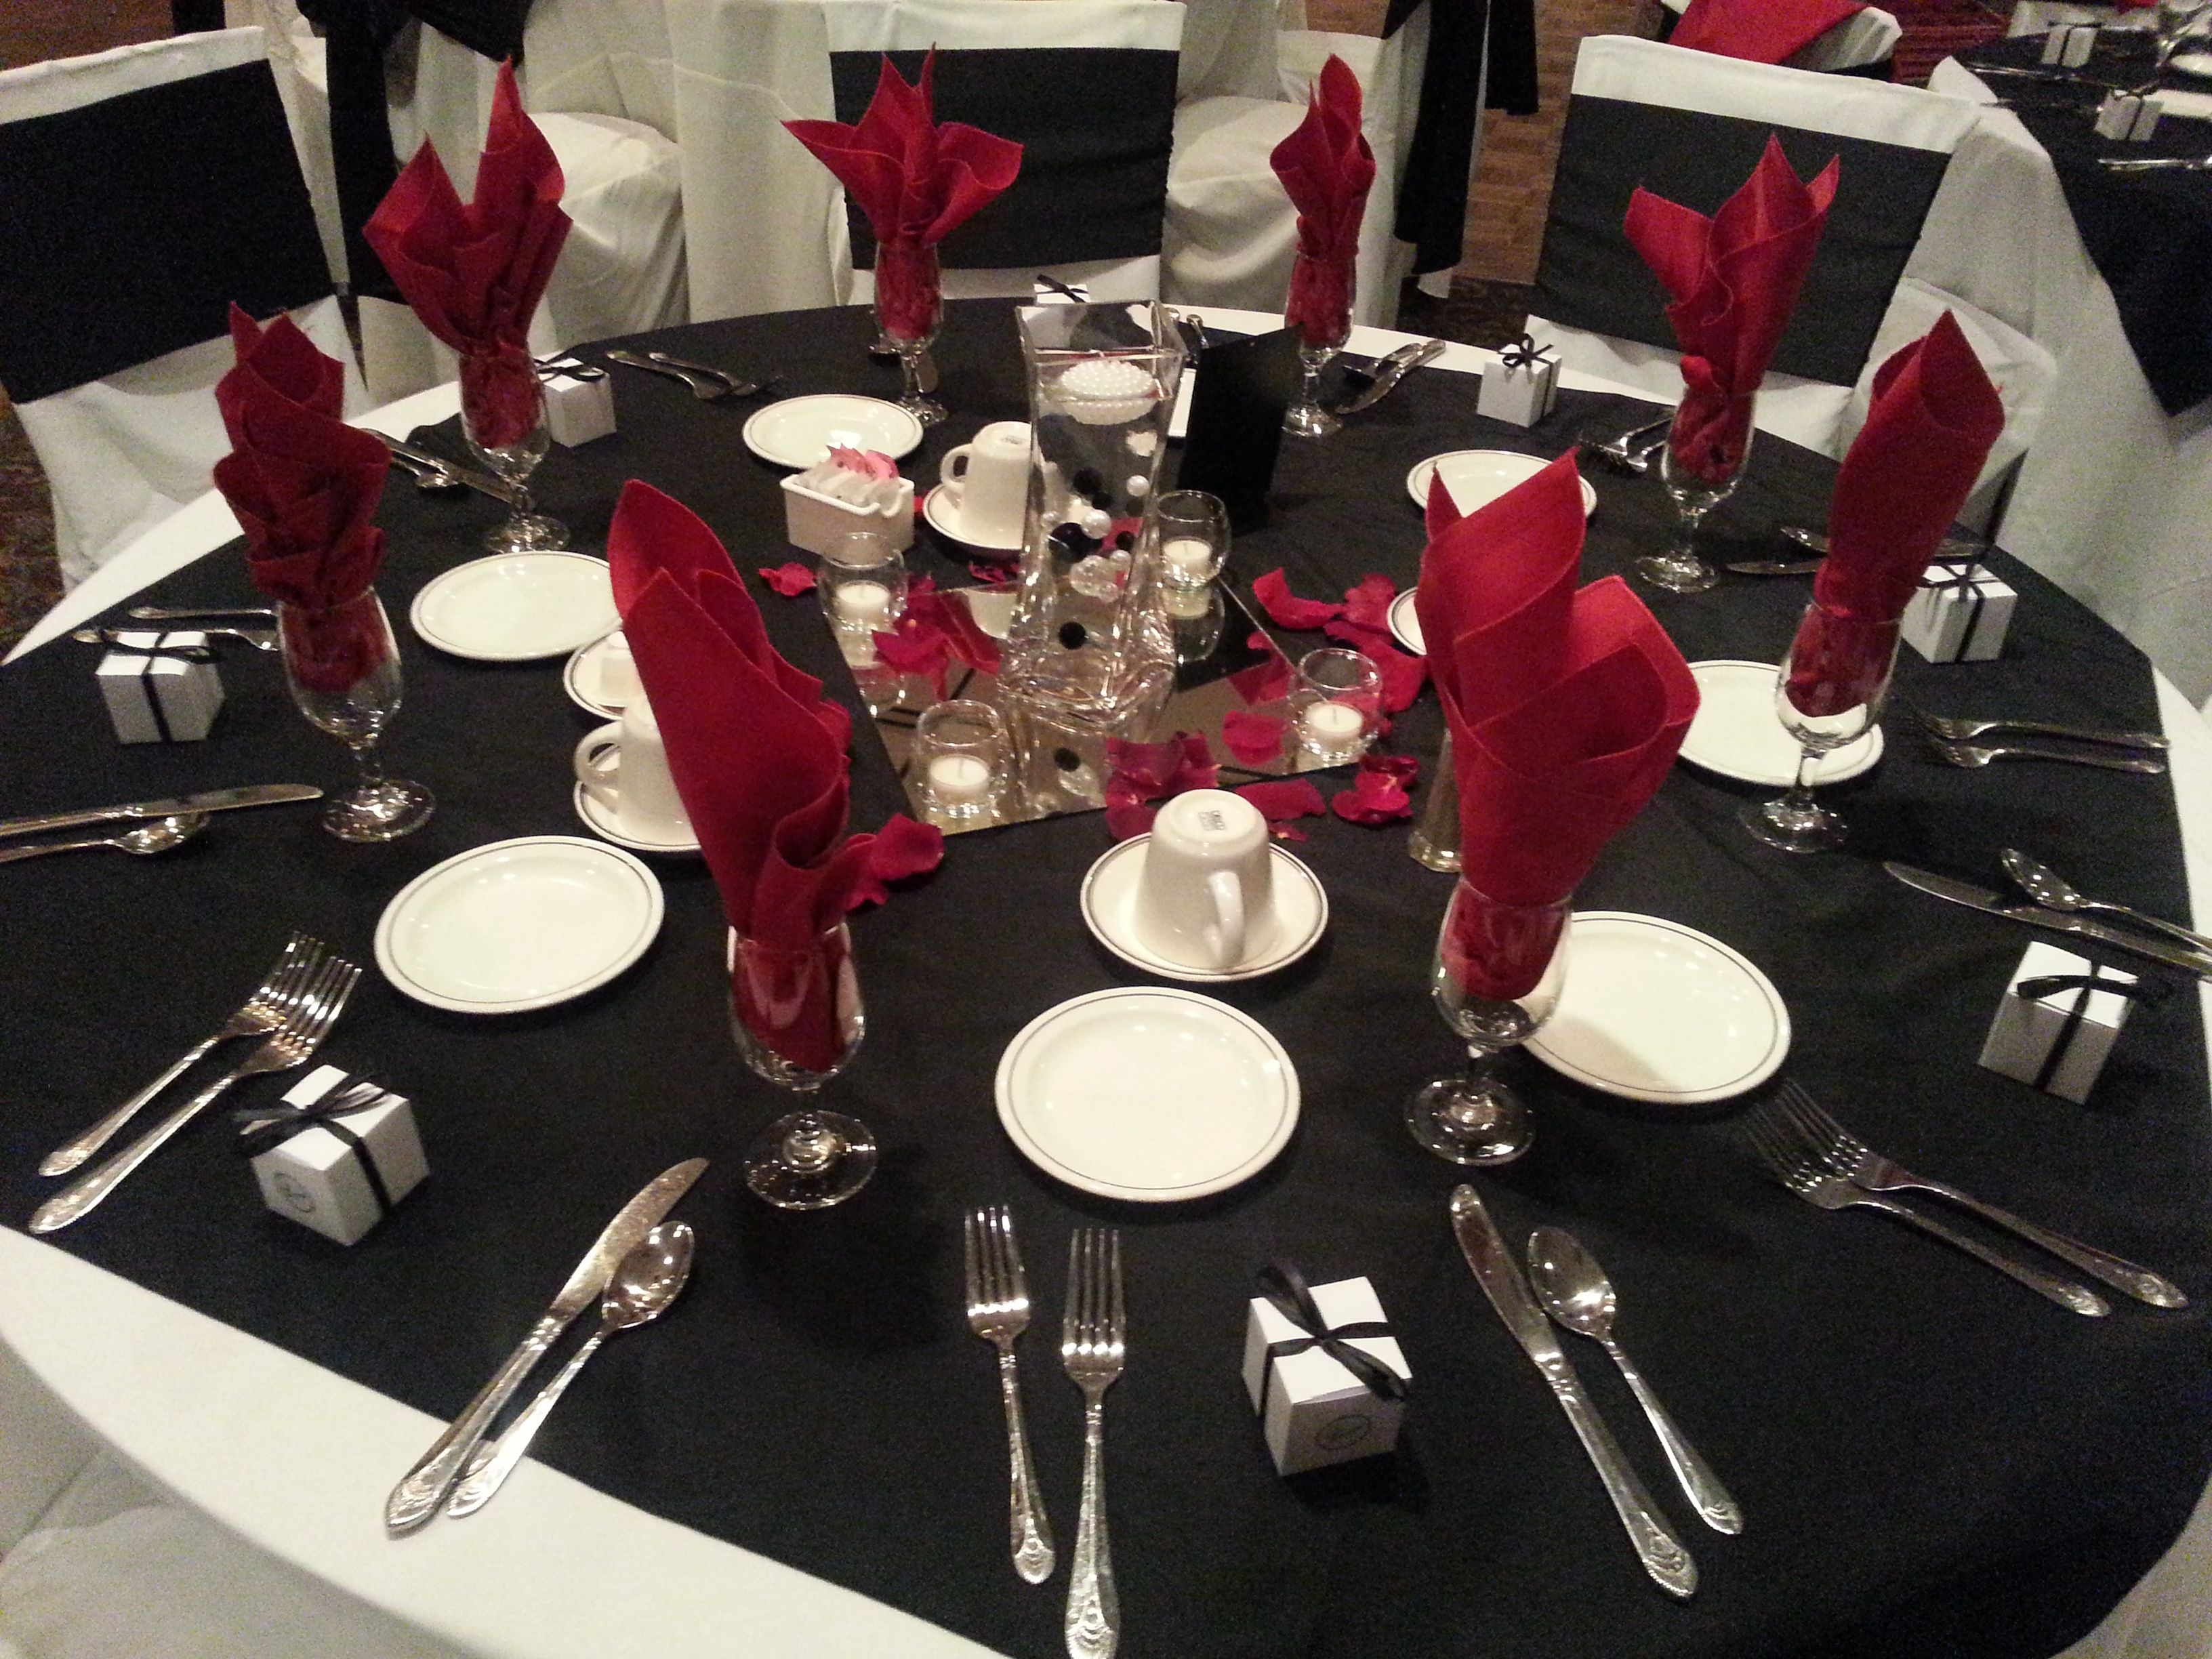 White table cloth with black topper and red napkins for Black and white reception tables